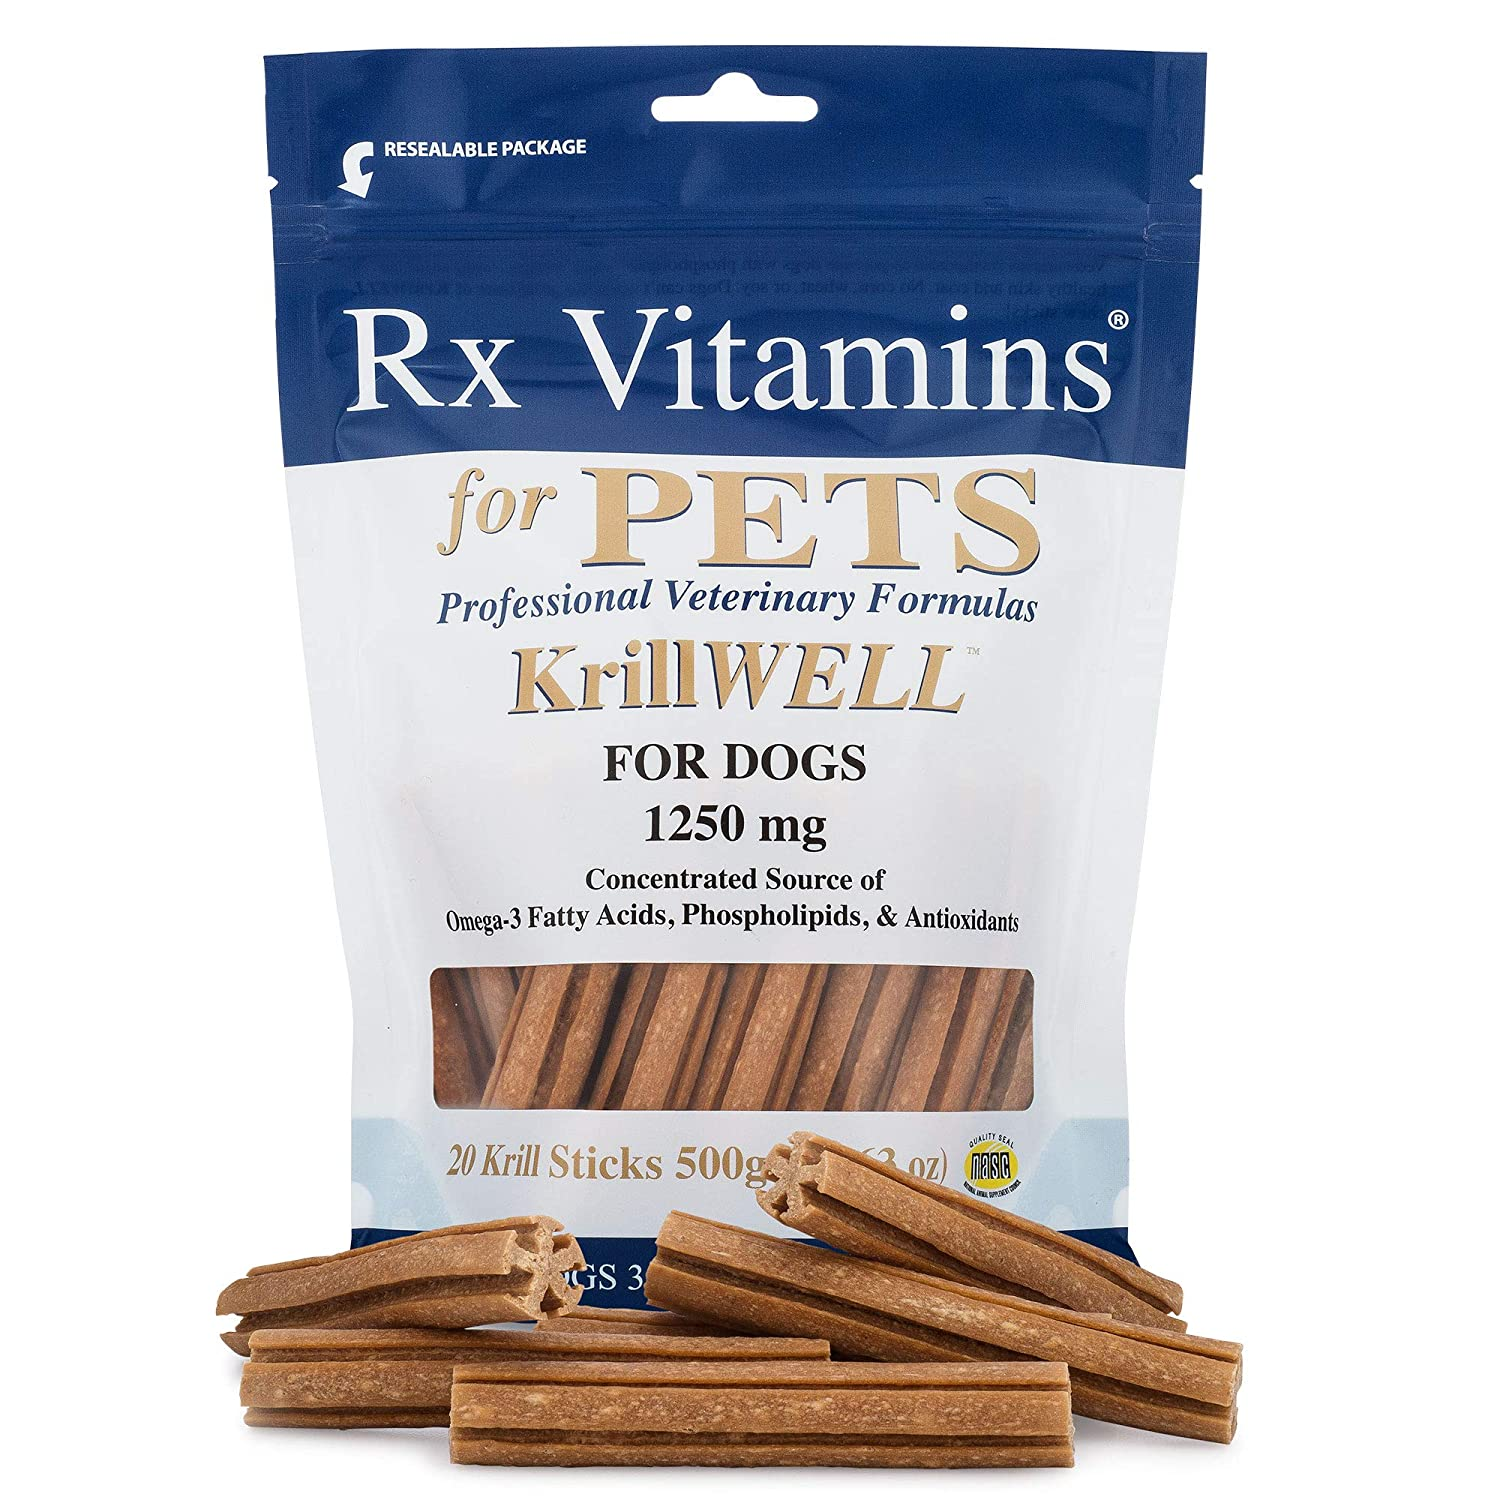 RX Vitamins Omega 3 Krill Fish Oil Sticks for Dogs – Phospholipid Bound Omega-3 and Astaxanthin – Qrill Pet Krill Meal for Amazing Skin and Coat, Reduced Inflammation and Allergy Relief